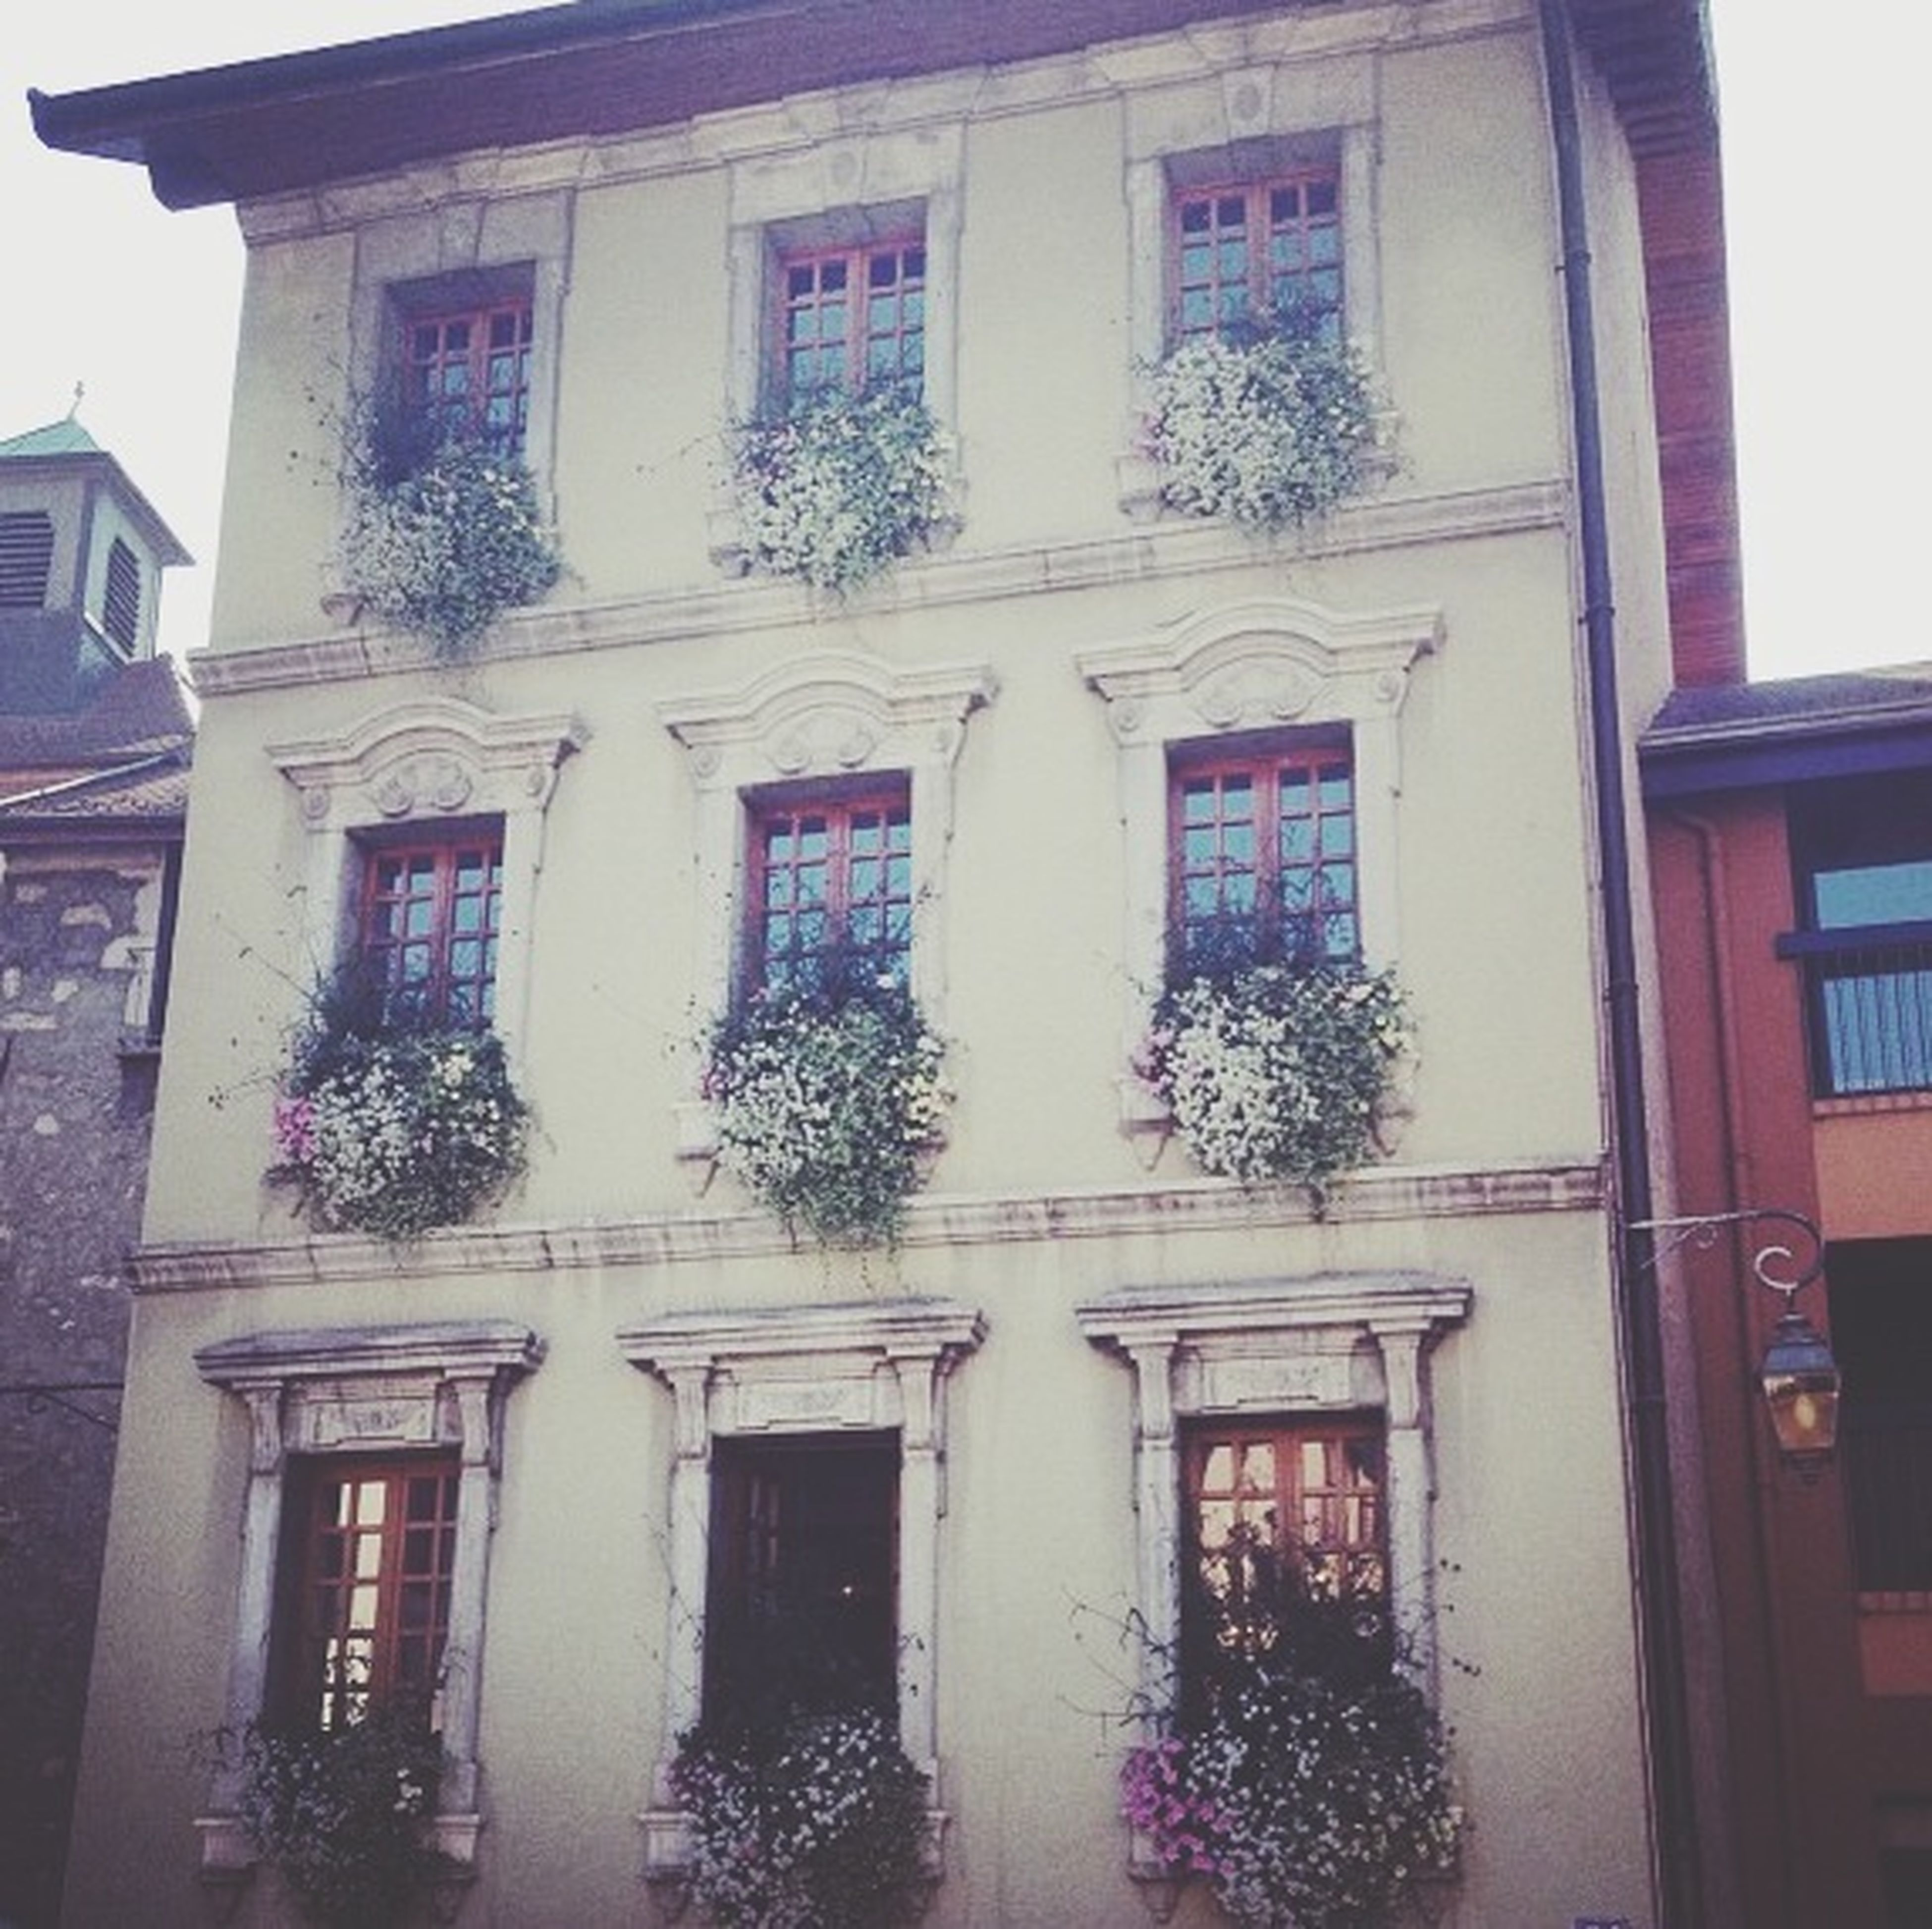 architecture, building exterior, window, built structure, low angle view, house, residential building, building, residential structure, facade, potted plant, balcony, day, glass - material, no people, plant, outdoors, decoration, growth, tree